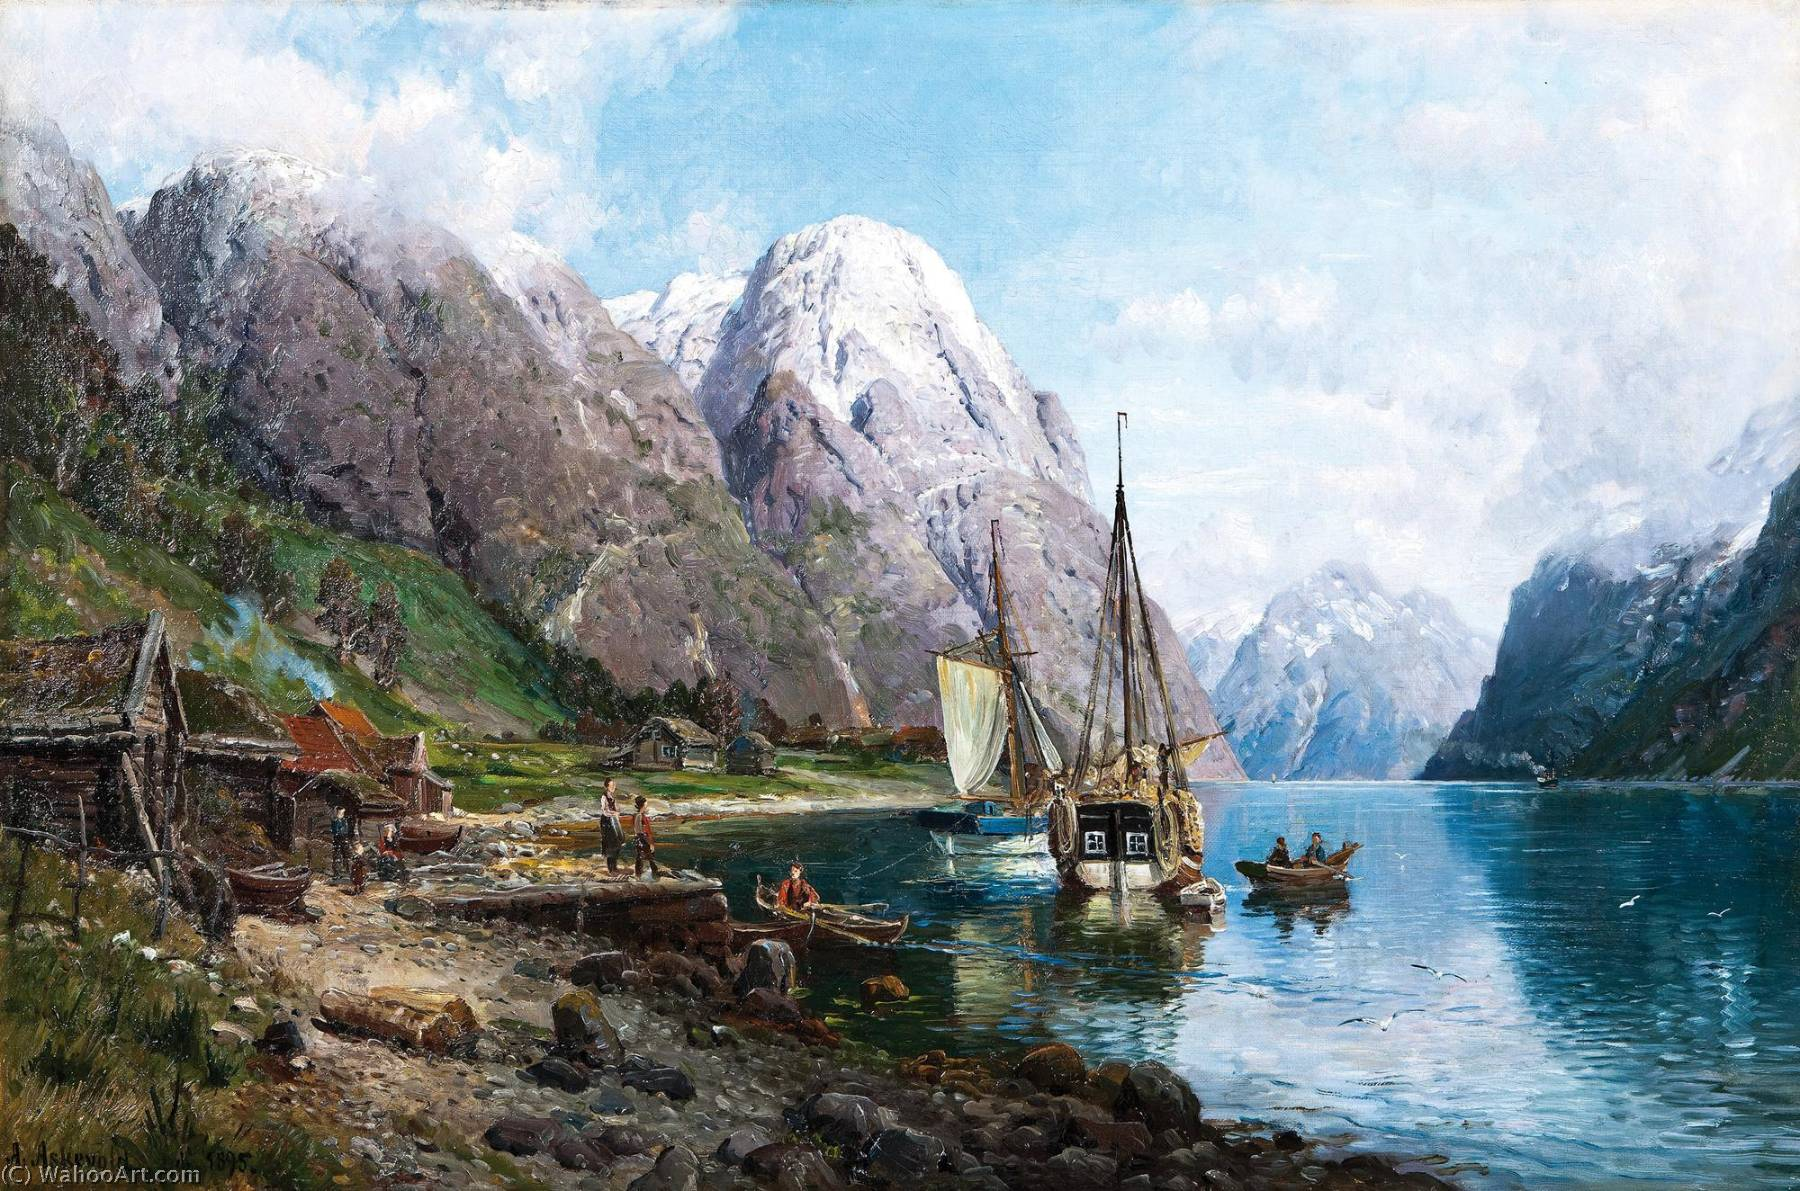 Anders Monsen Askevold Harbor in the Sognefjord also known as From a Harbor in the Sognefjord